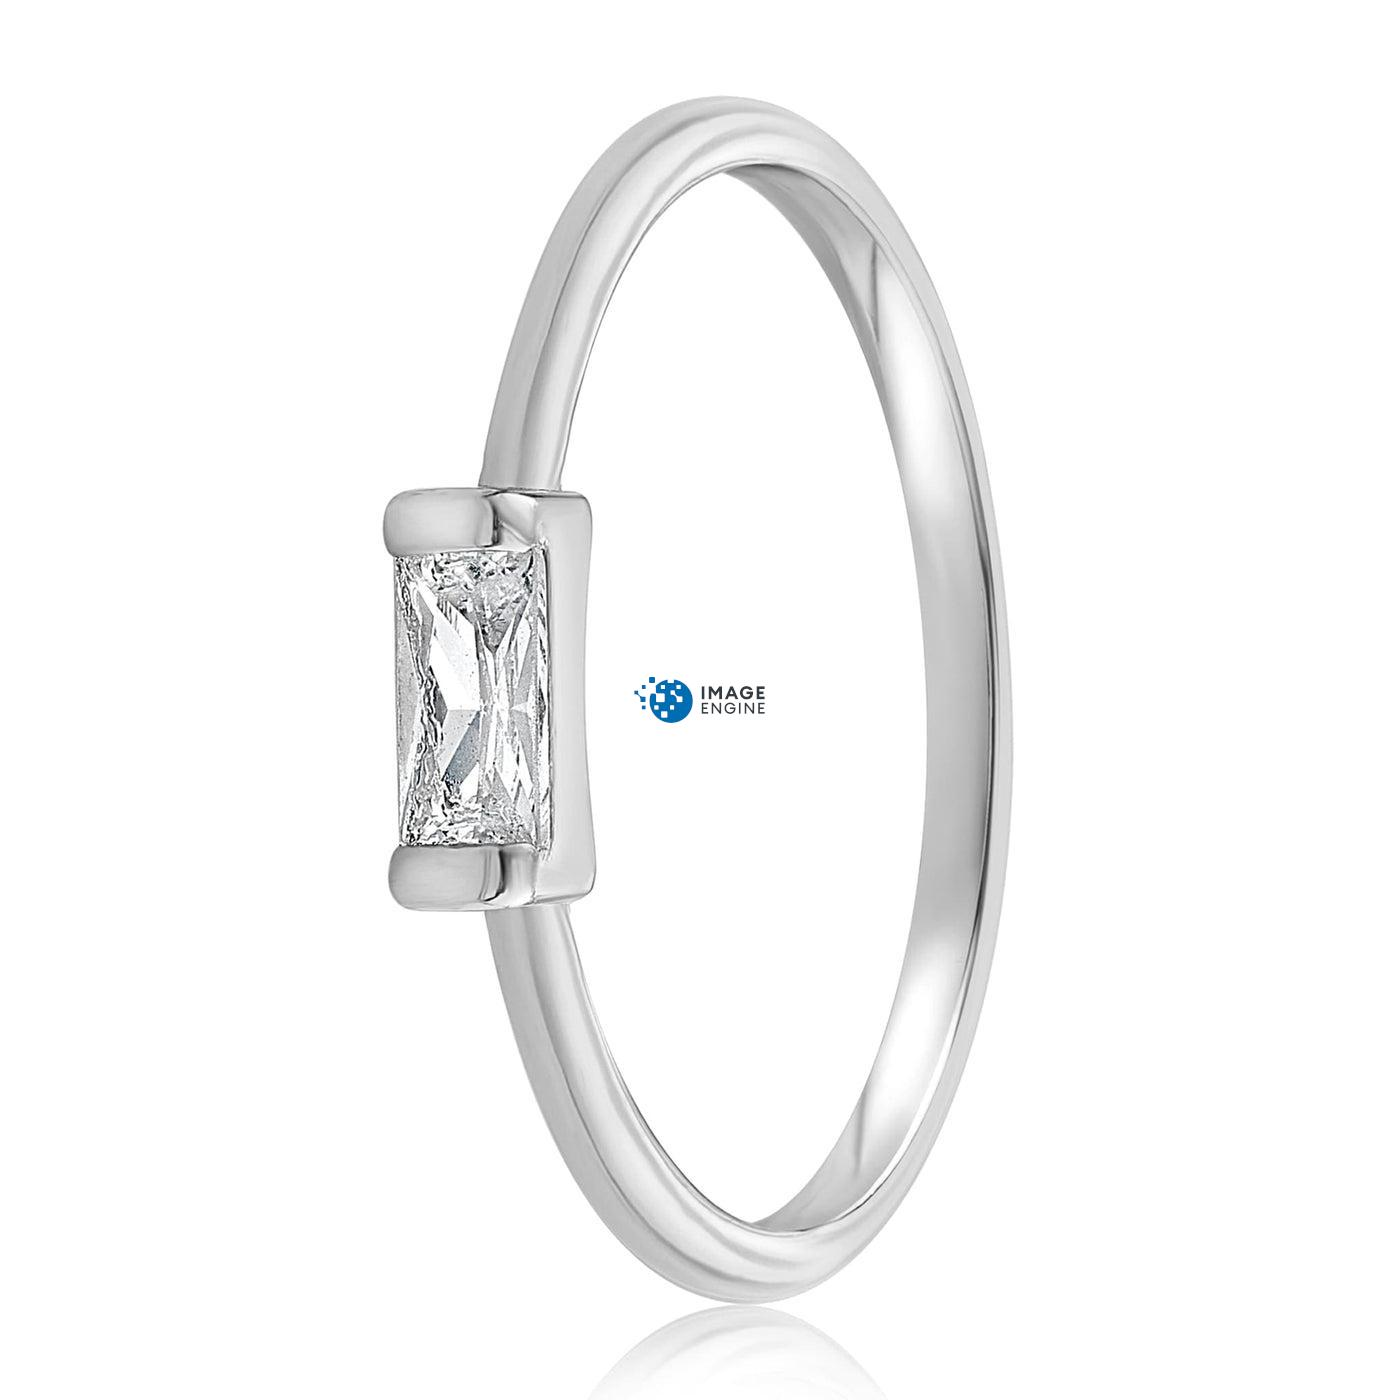 Moonie Glass Geometric Ring - Side View - 925 Sterling Silver